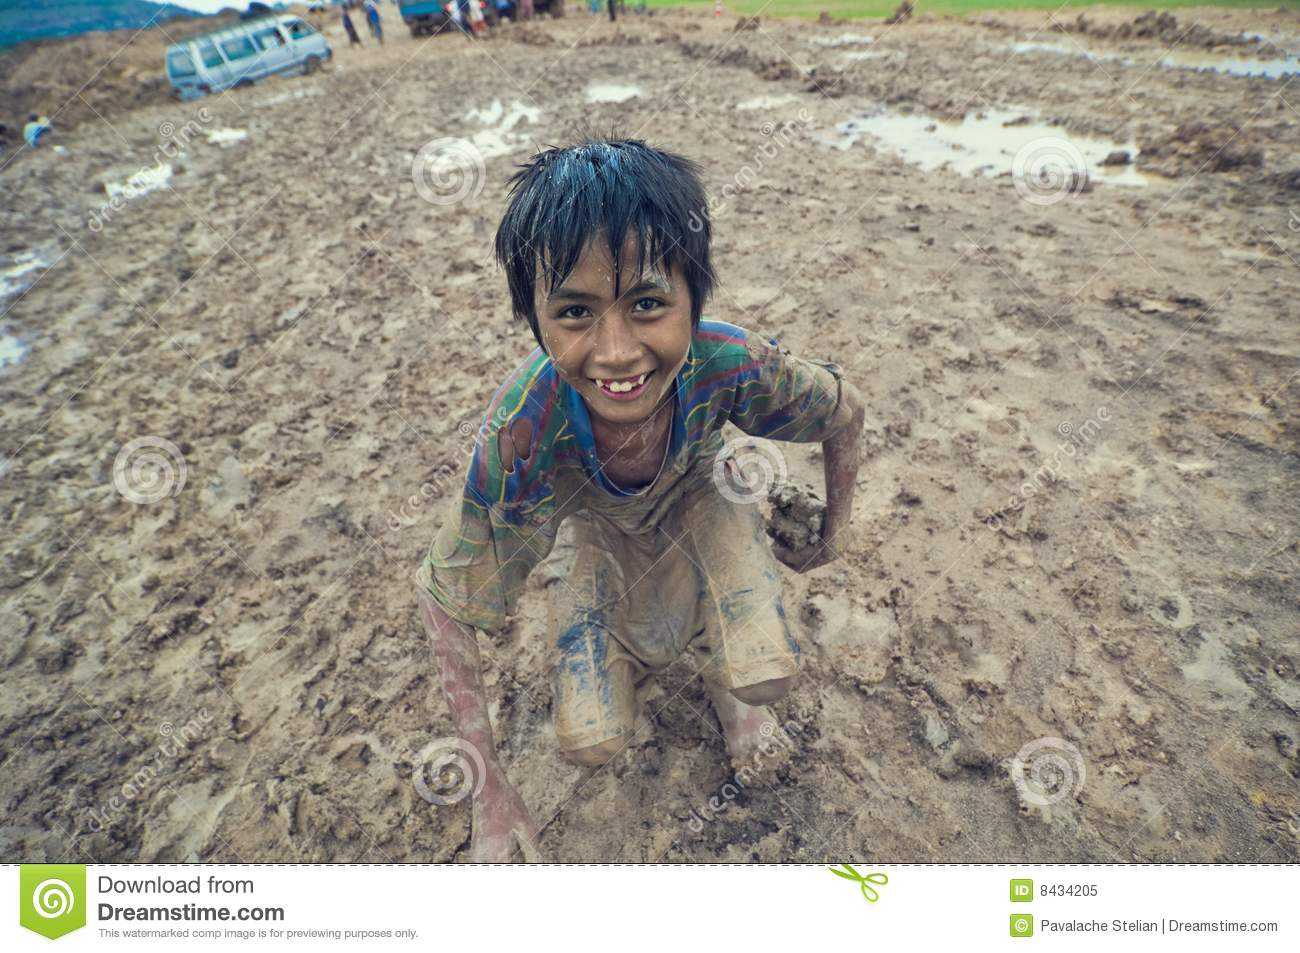 Naked cambodian kids Poor cambodian kid playing Royalty Free Stock Photo